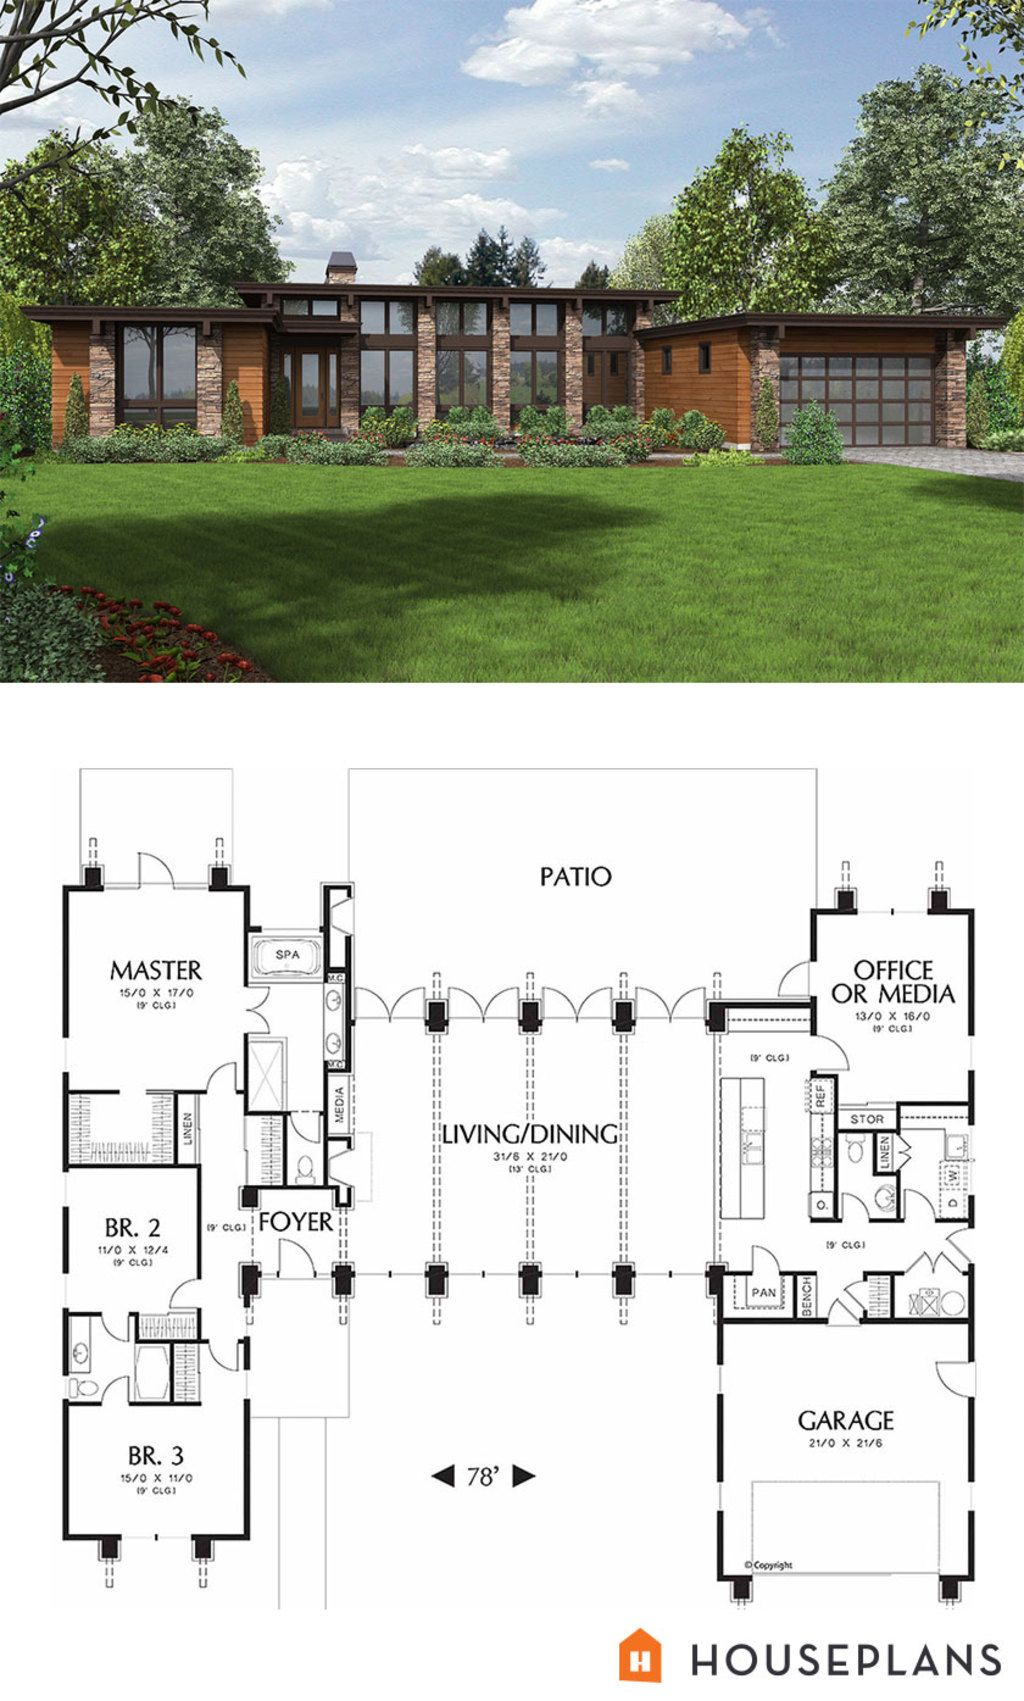 Modern Style House Plan 3 Beds 2 5 Baths 2557 Sq Ft Plan 48 476 Modern Style House Plans Modern House Floor Plans Modern Floor Plans